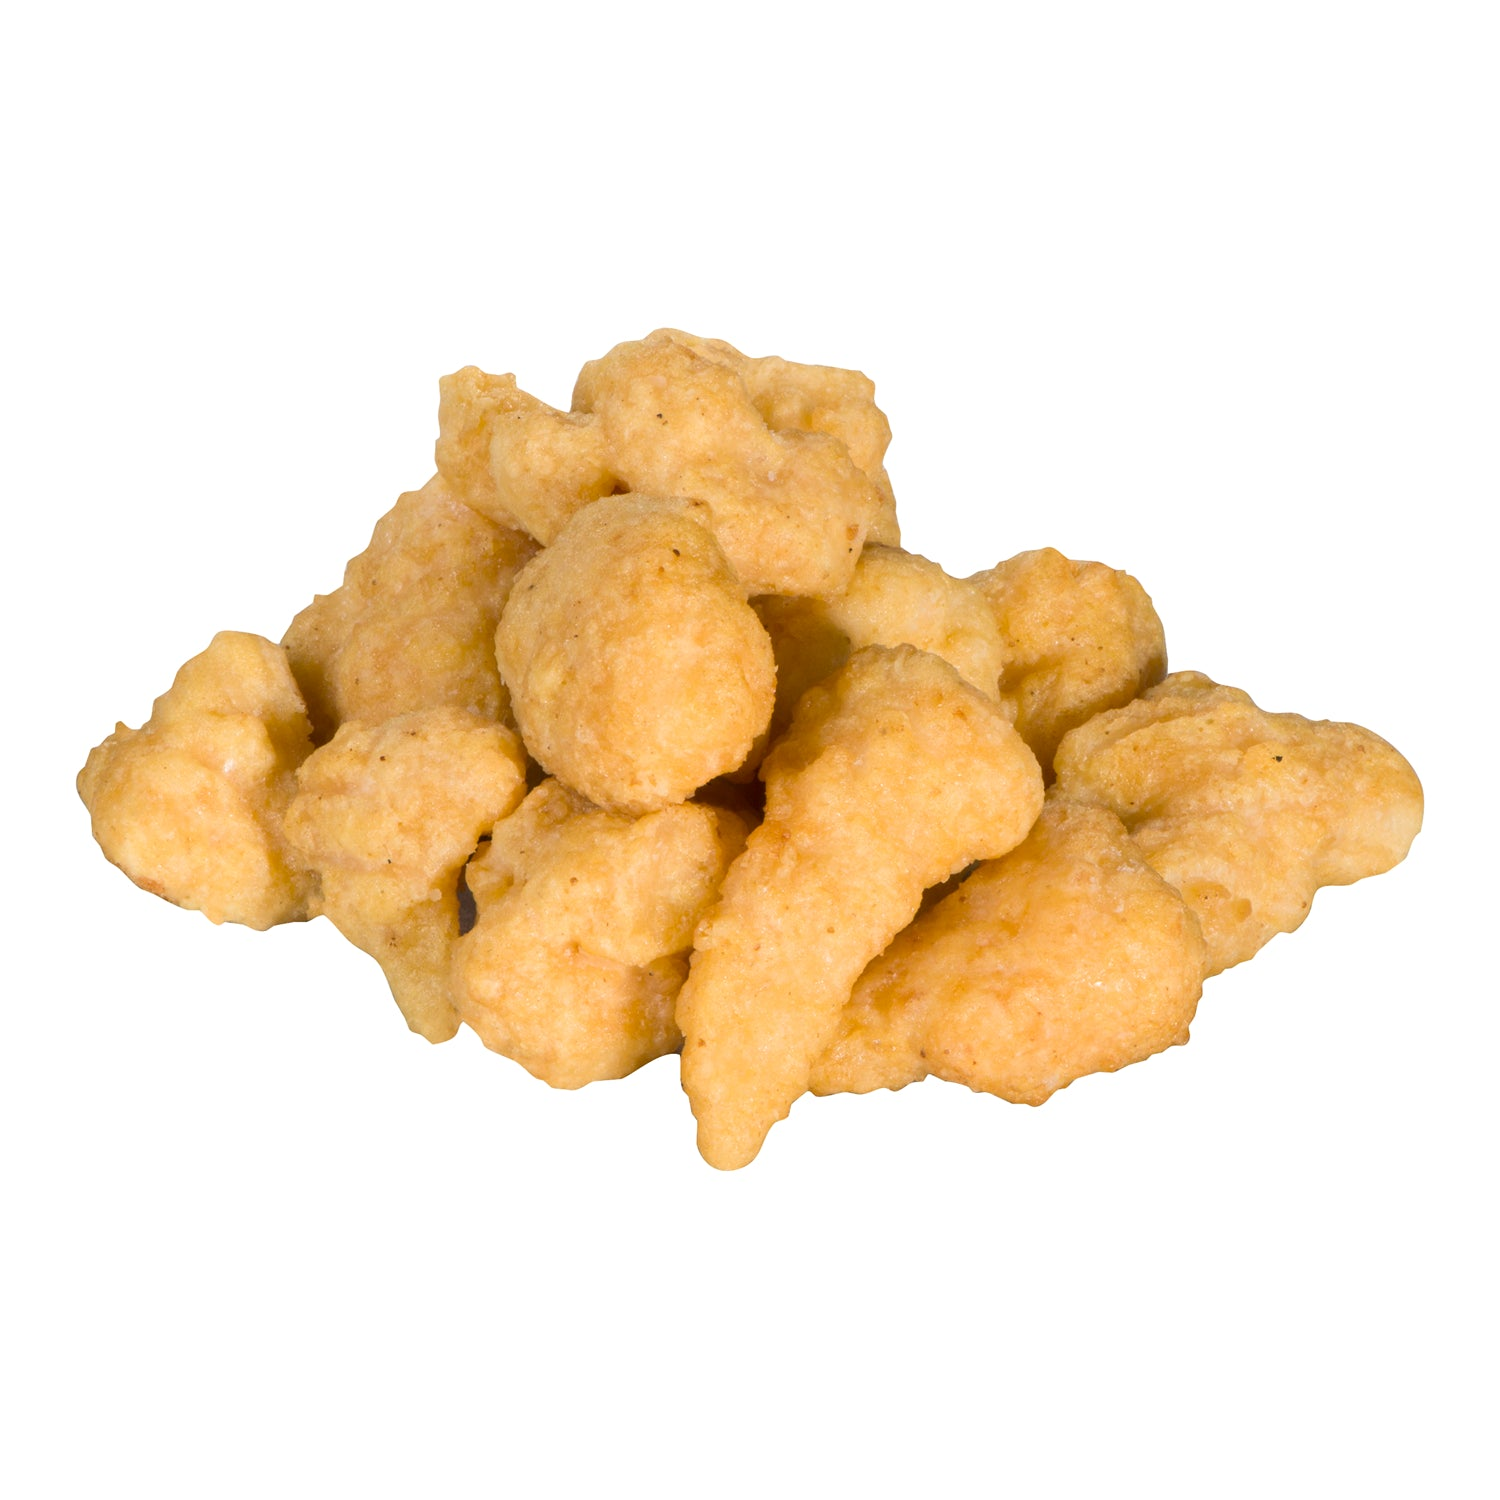 McCain Frozen Battered Cauliflower Bites 2 lb - 6 Pack [$4.00/lb]